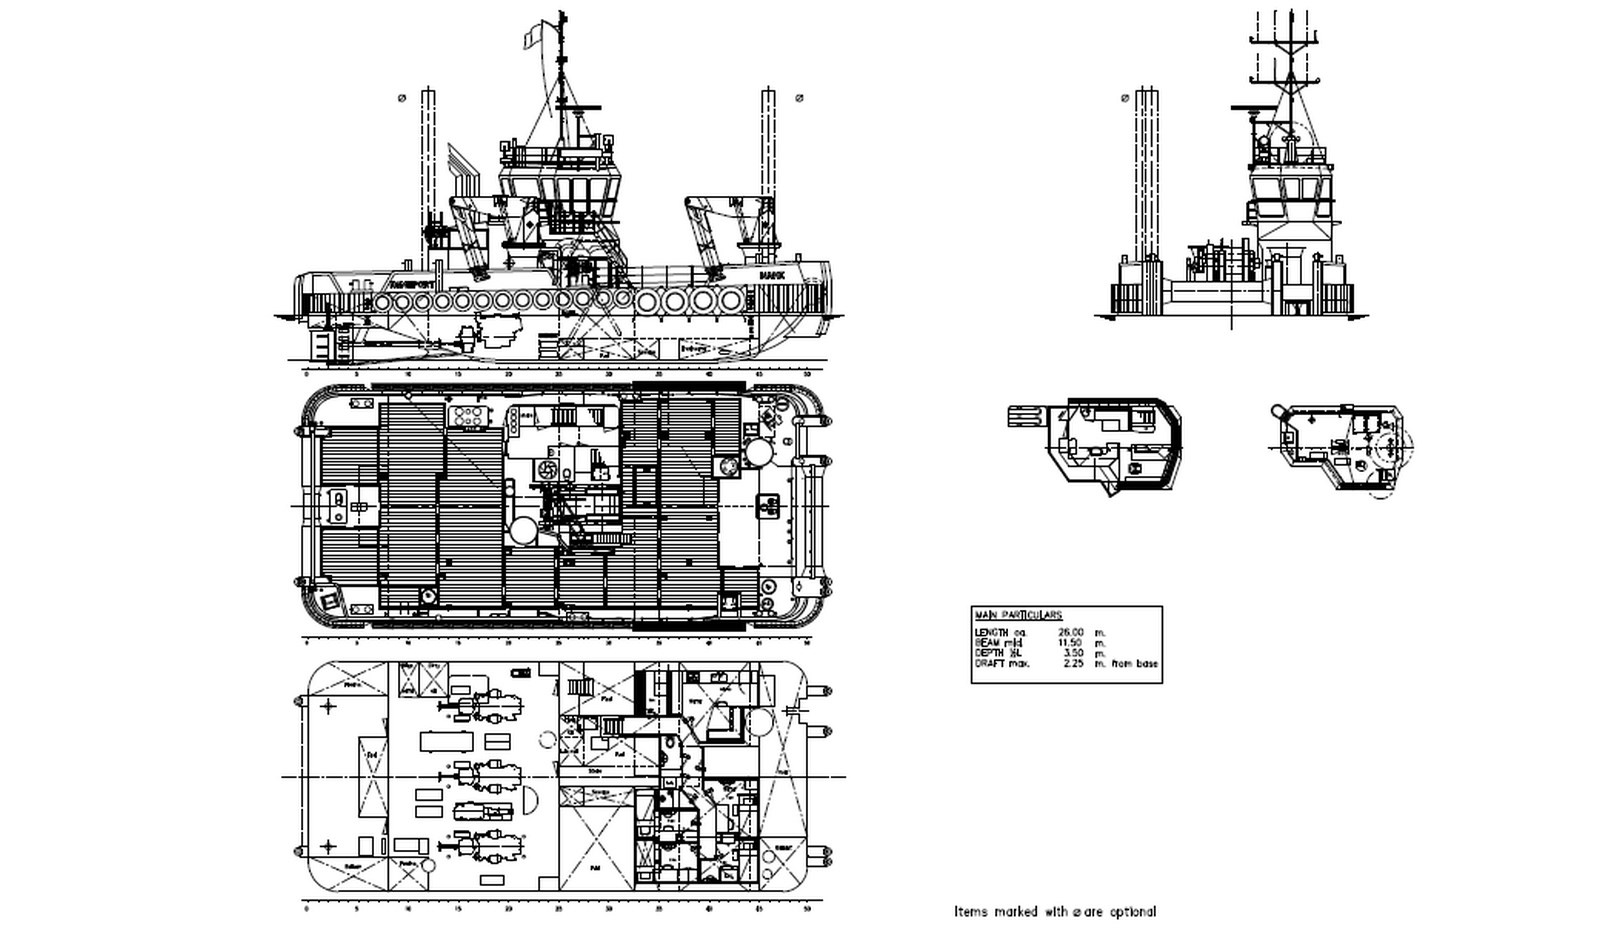 General Arrangement of Damen Multi Cat 2611